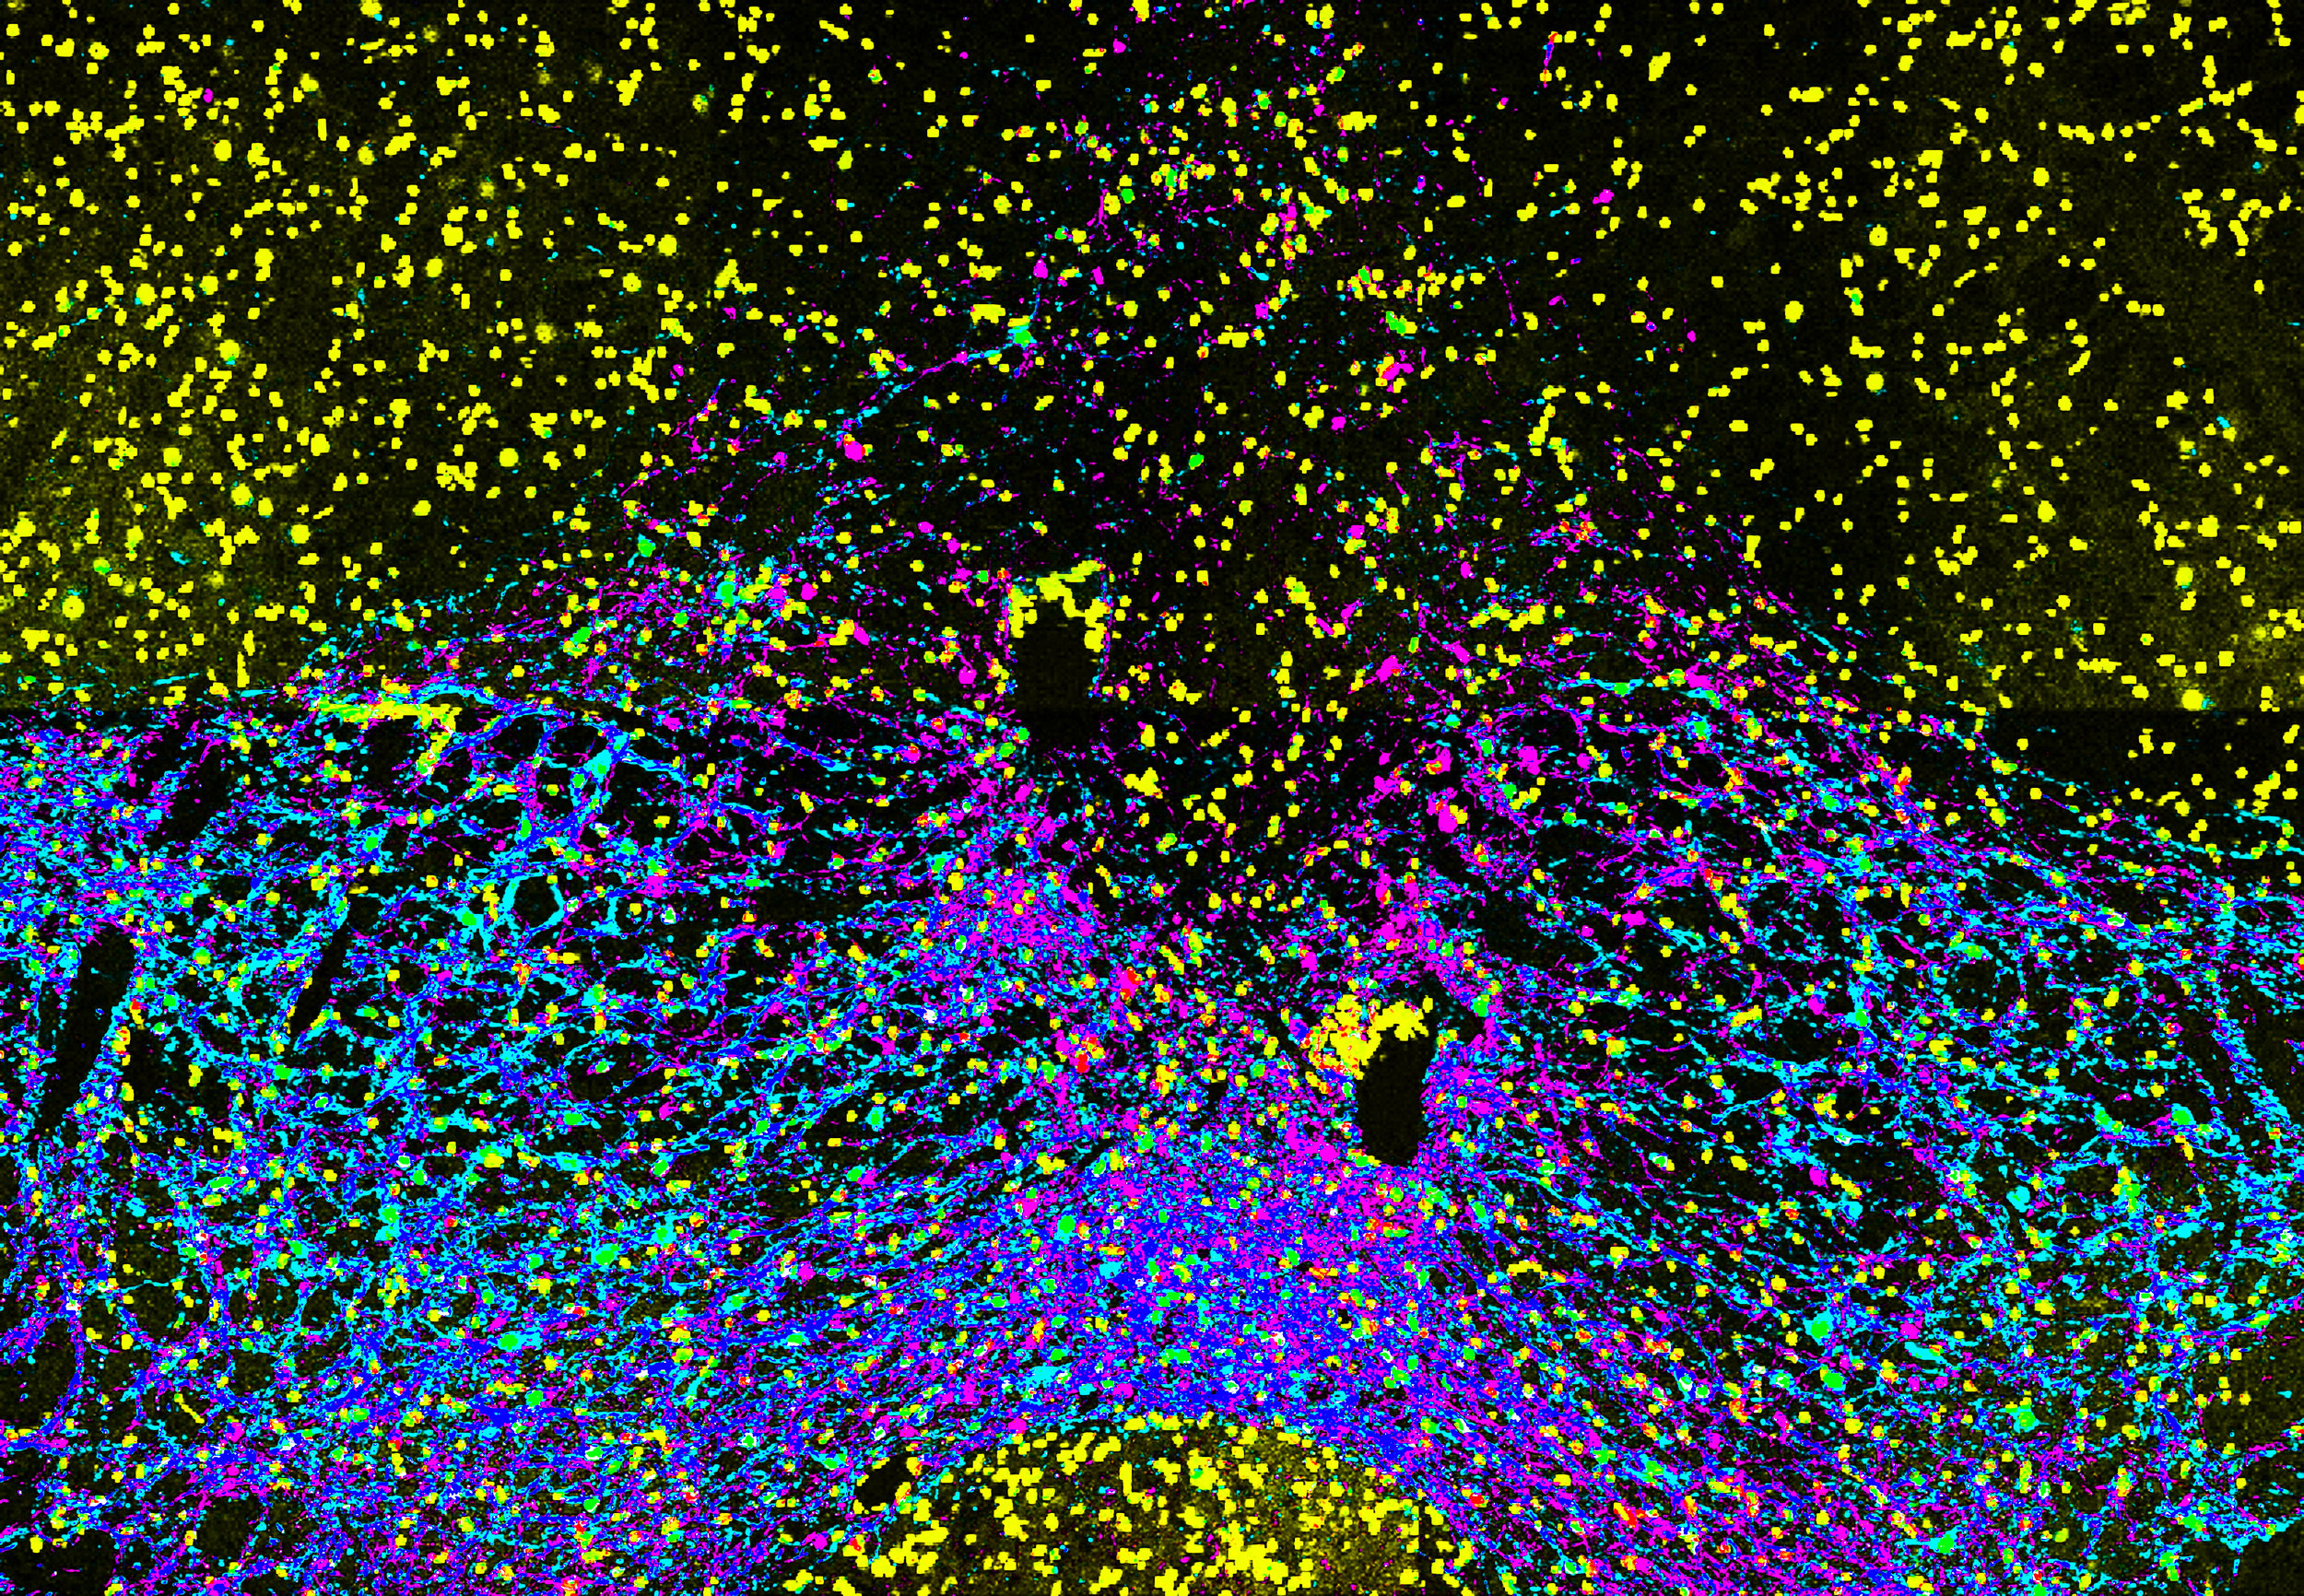 Image of the medial ventral tegmental area. Dopaminergic neurons, expressing tyrosine hydroxylase (pink), co-express ChR2-eYFP (light blue) in this preparation.